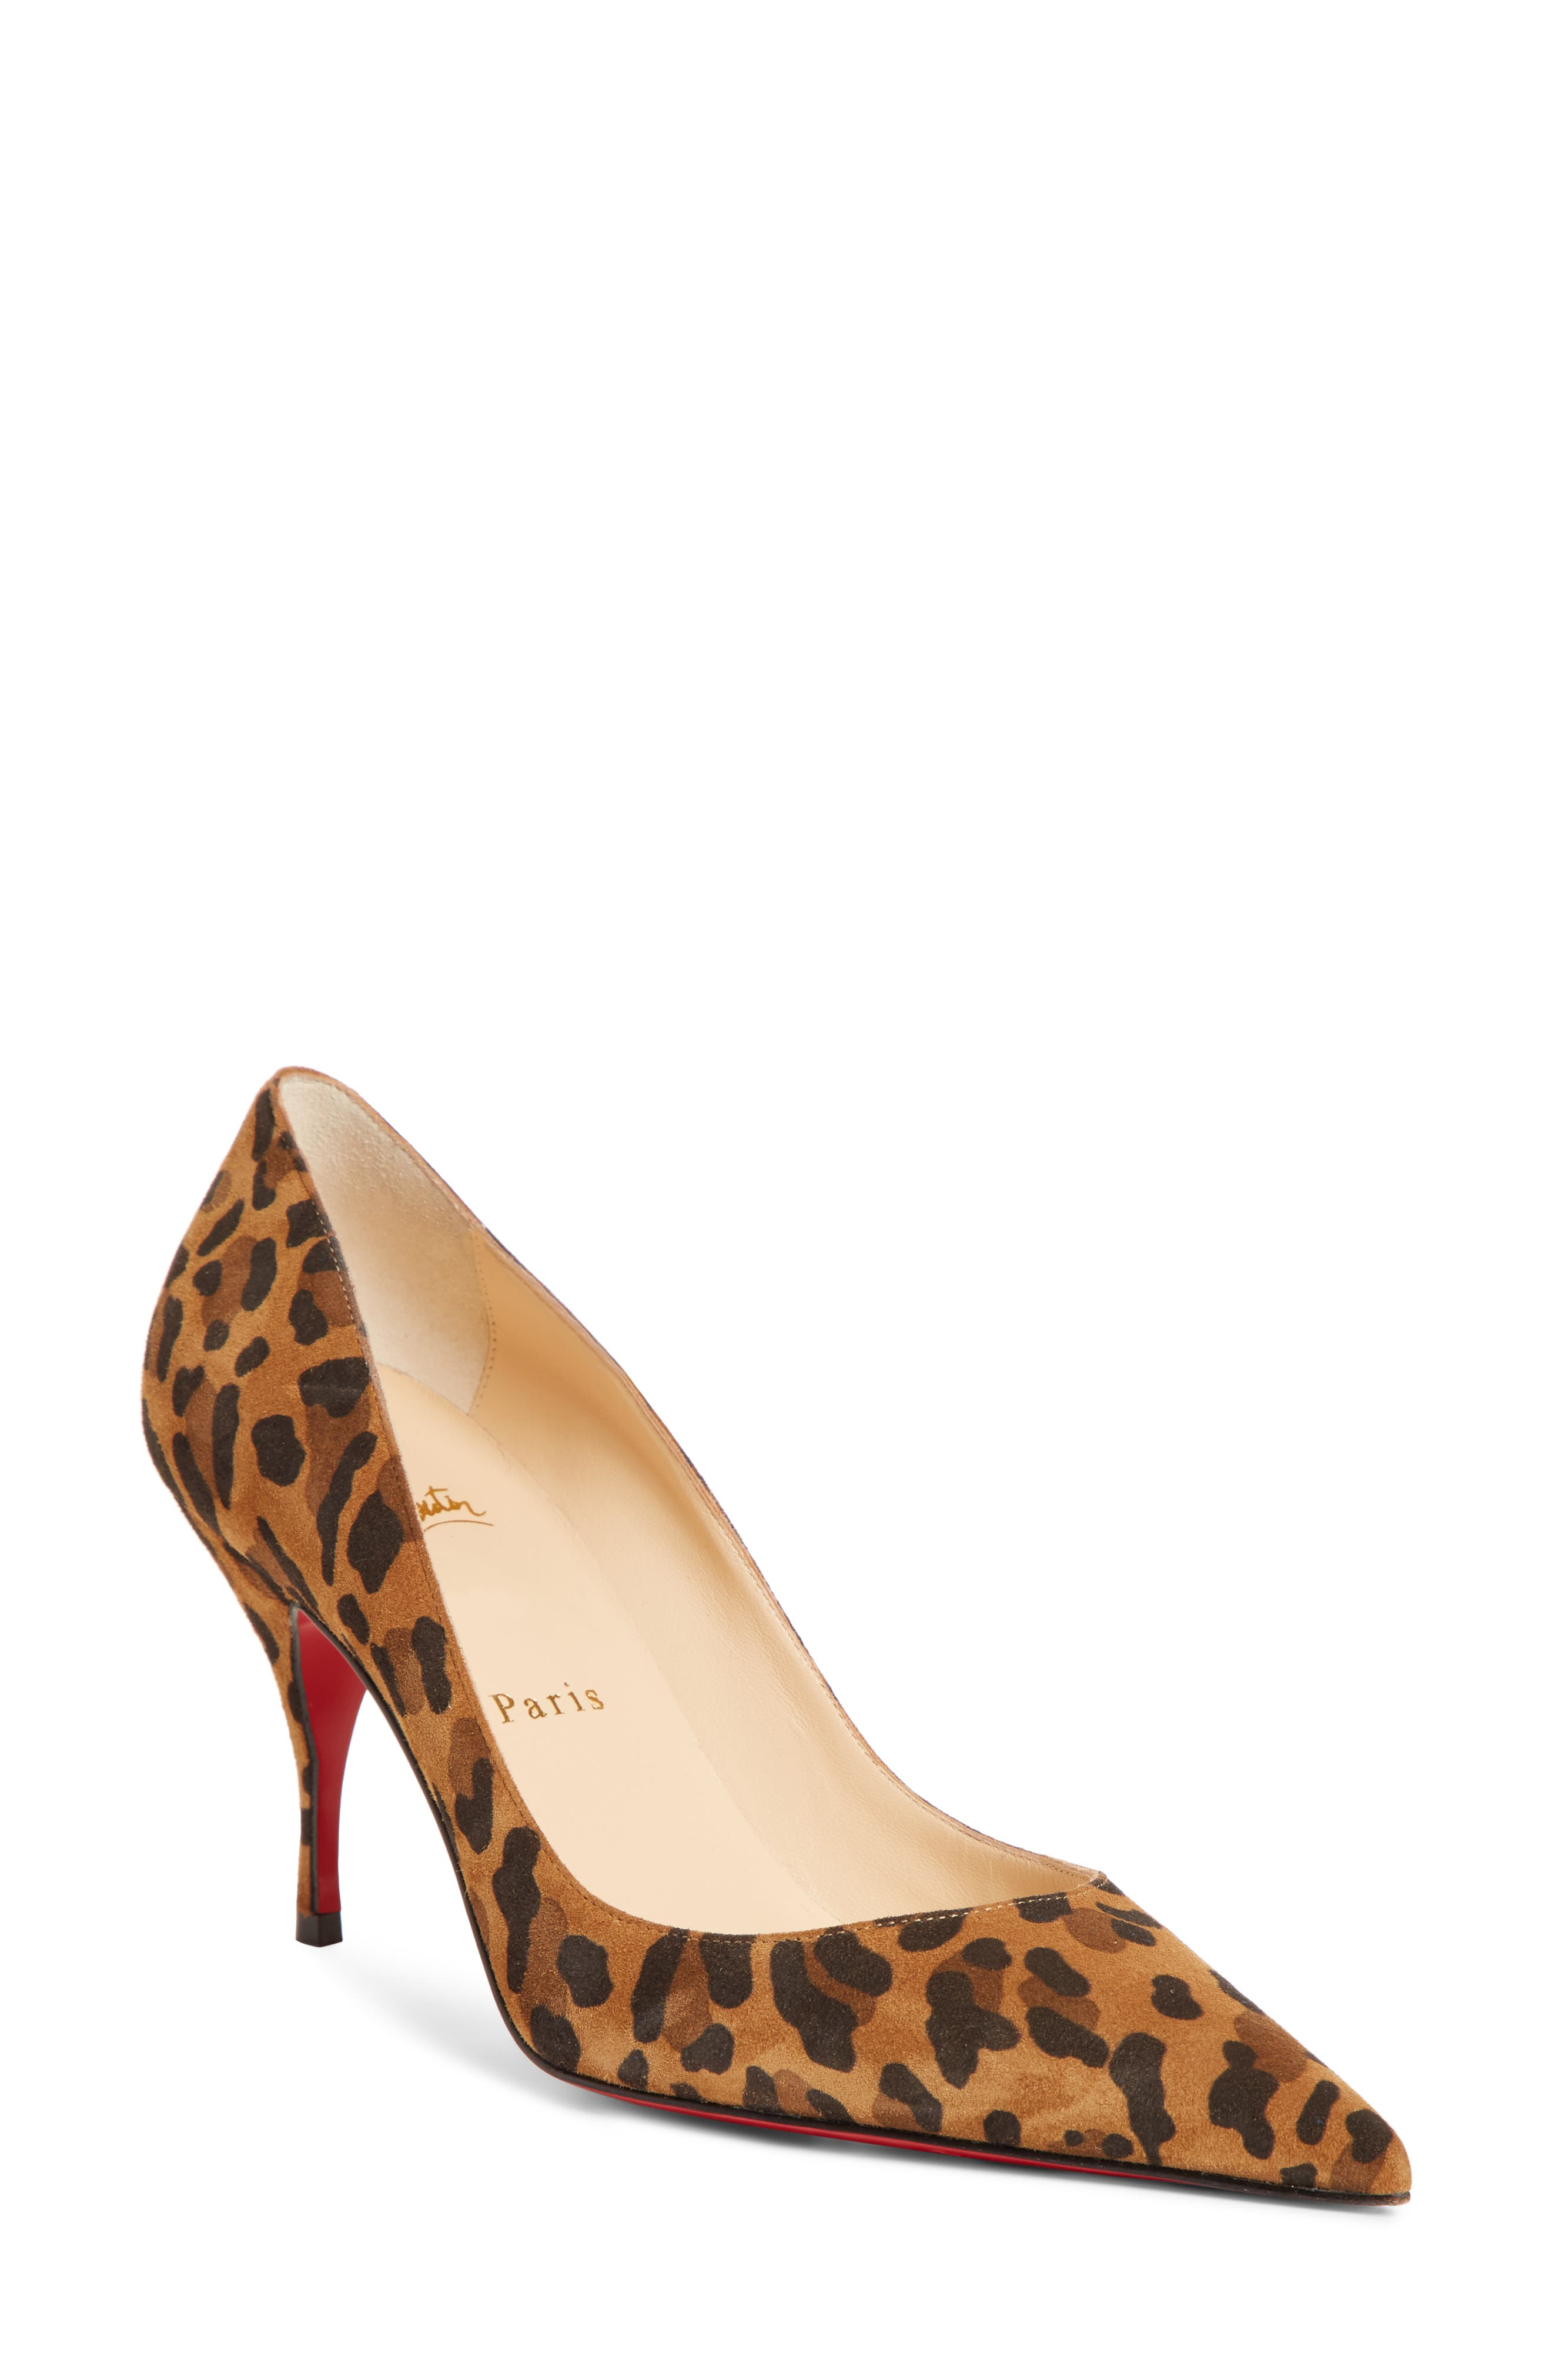 Christian Louboutin Clare Pointy Toe Pump - Brown